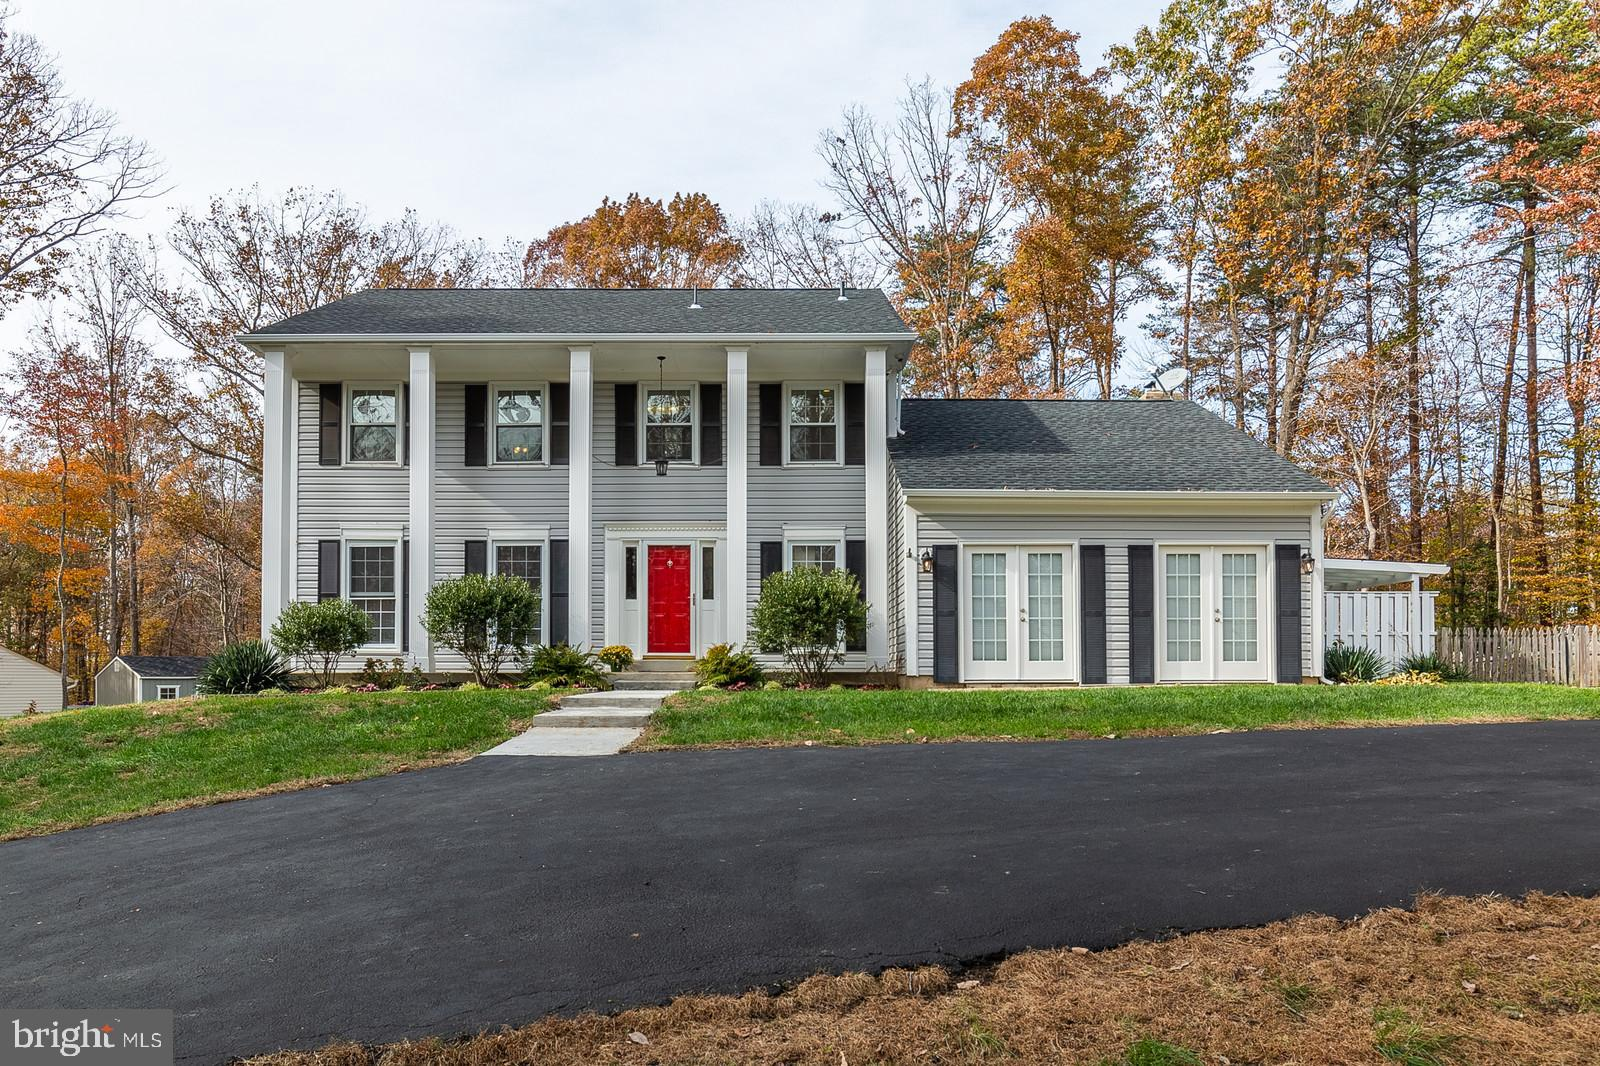 Welcome home to this beautifully updated and remodeled colonial on 1.36 acres! This home boasts a go